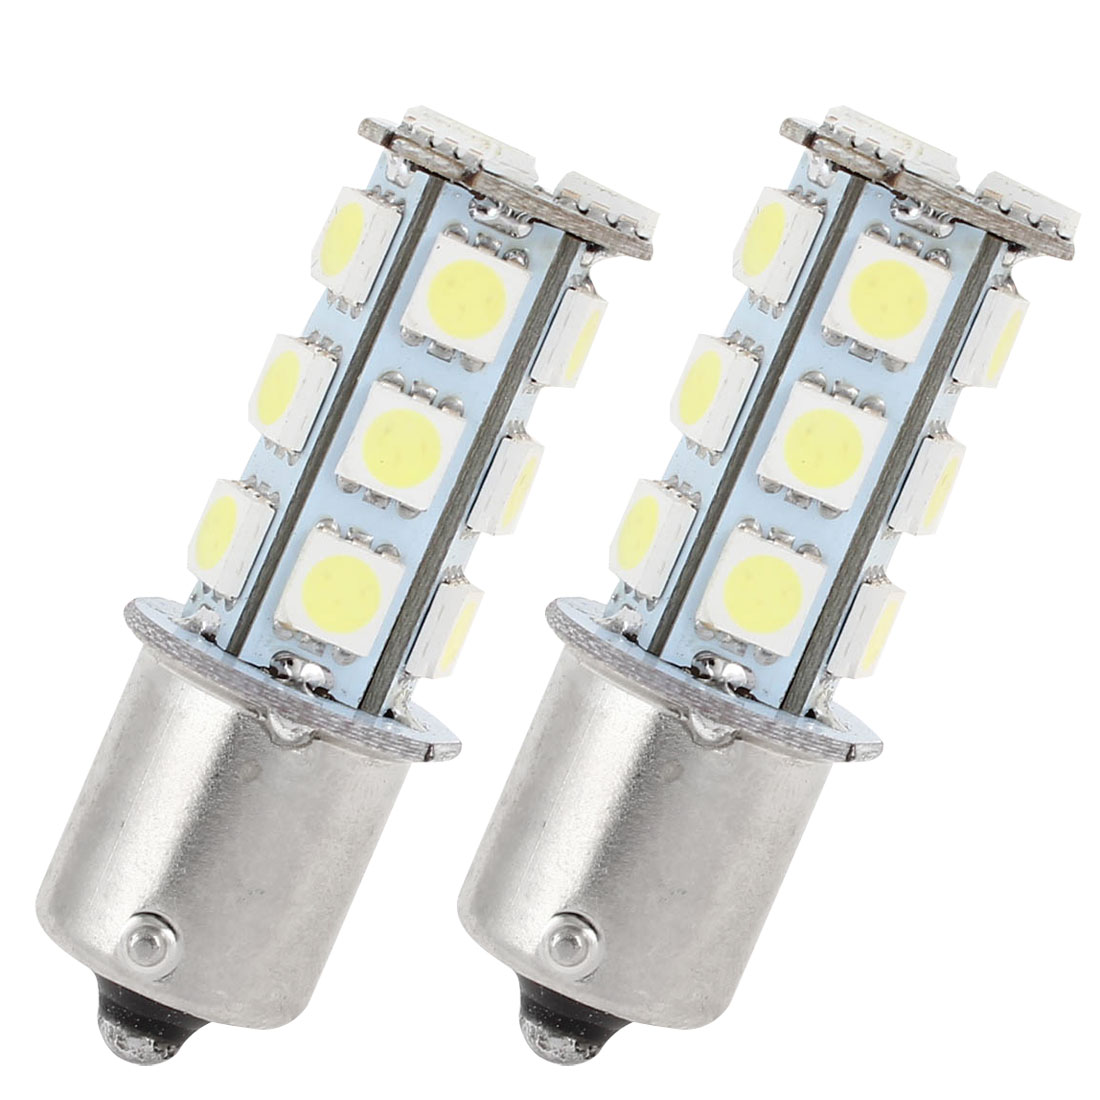 2 Pcs White 18 LED 1156 BA15S 5050 SMD Car Indicator Backup Tail Turn Light 5008